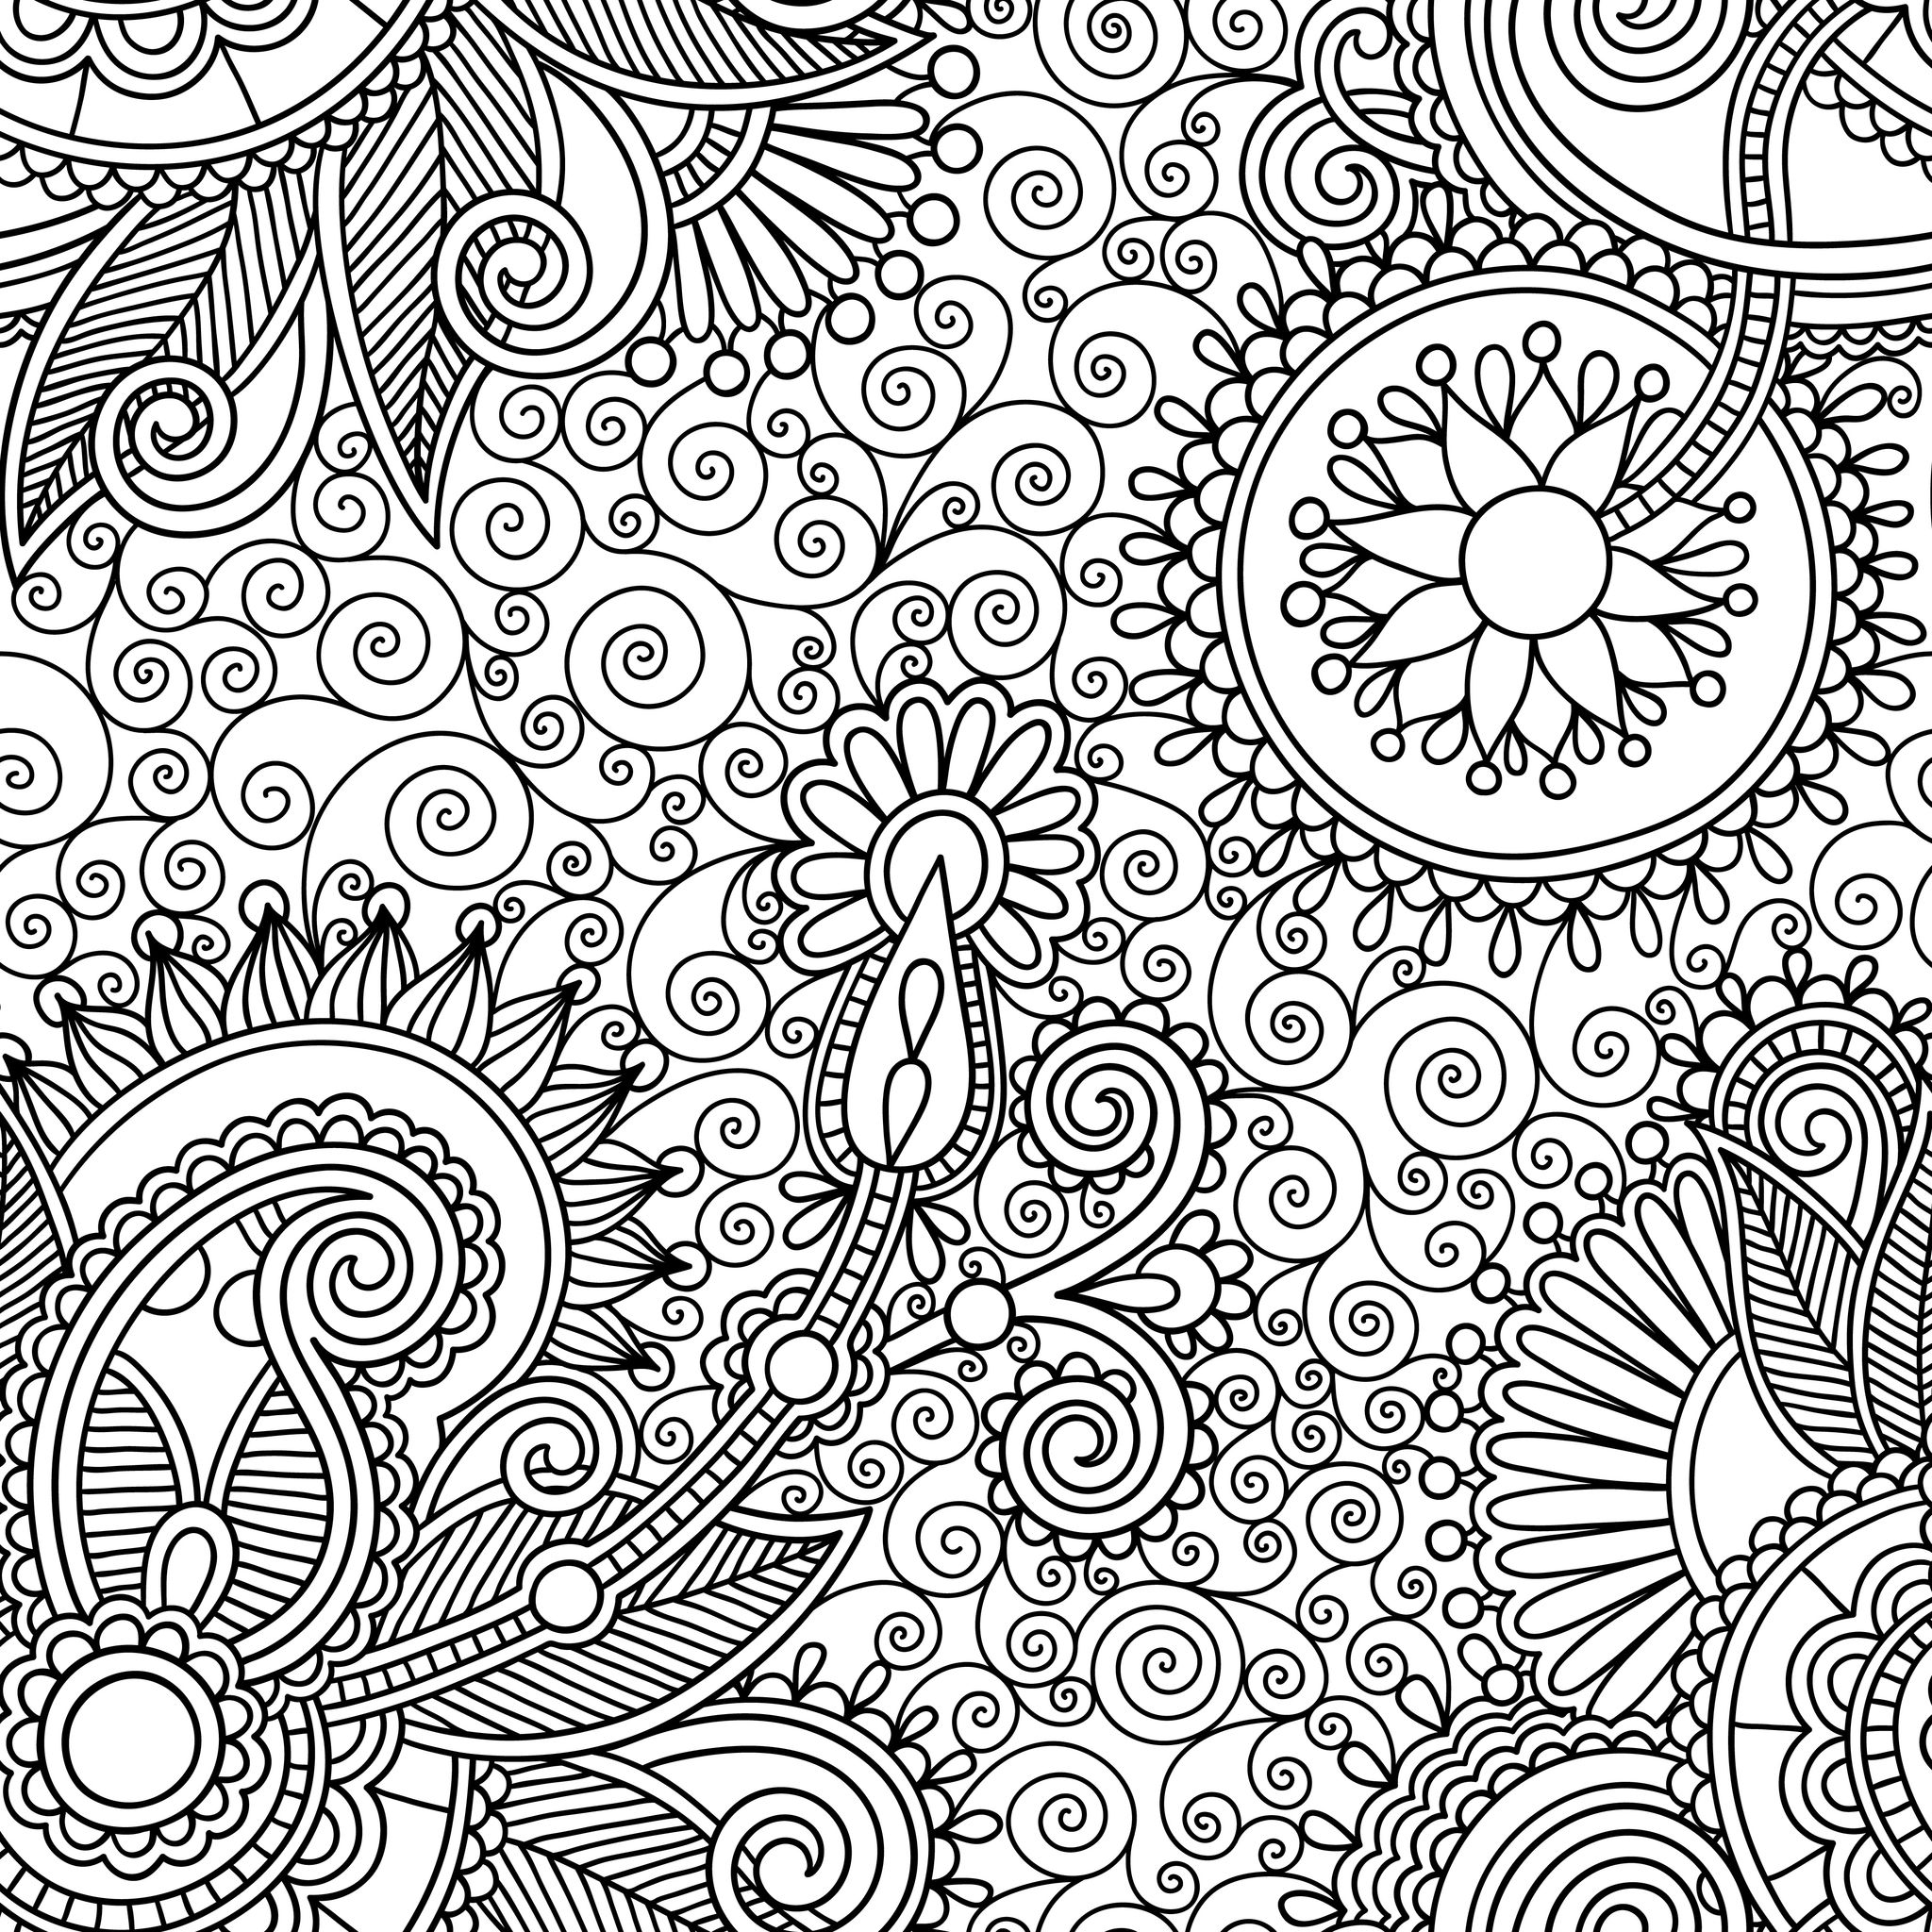 coloriage anti stress mandala